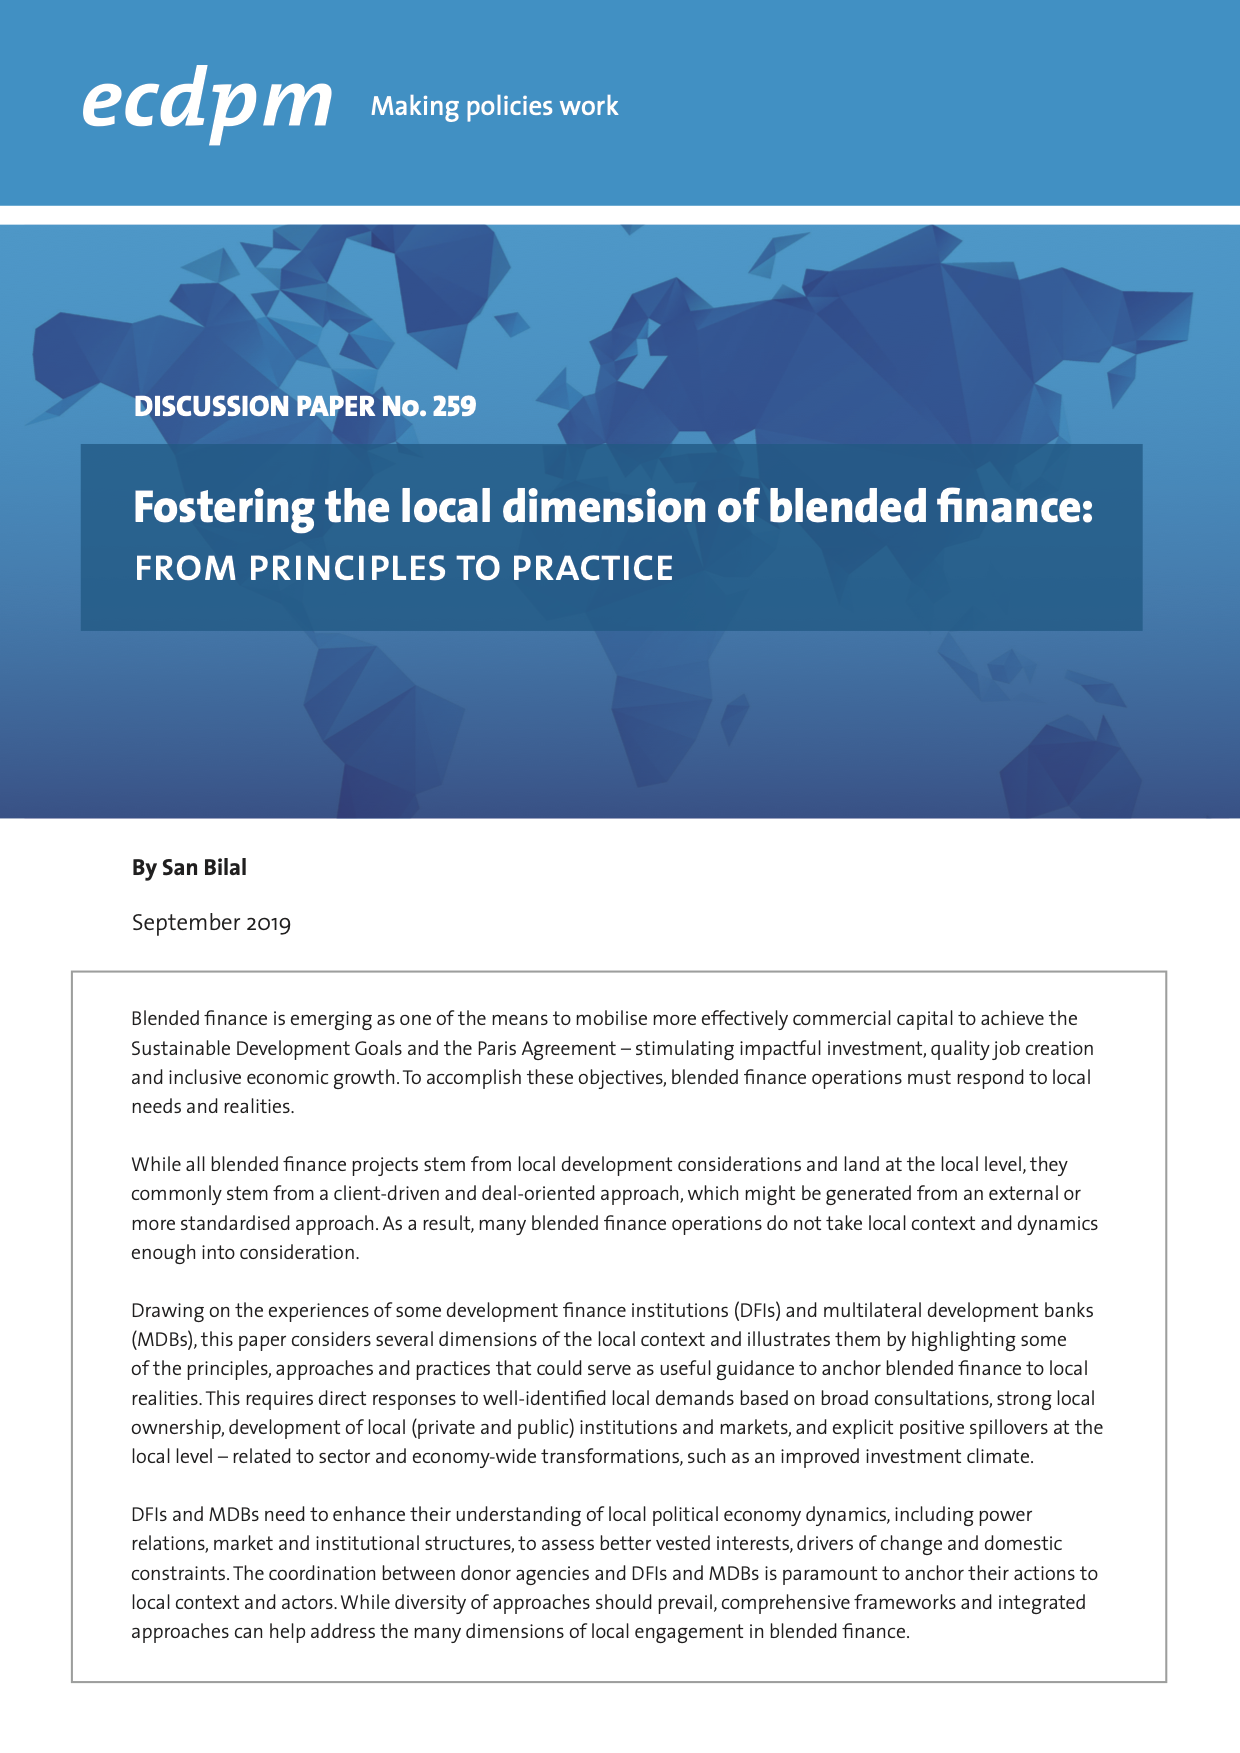 Fostering the Local Dimension of Blended Finance: From Principles to Practice